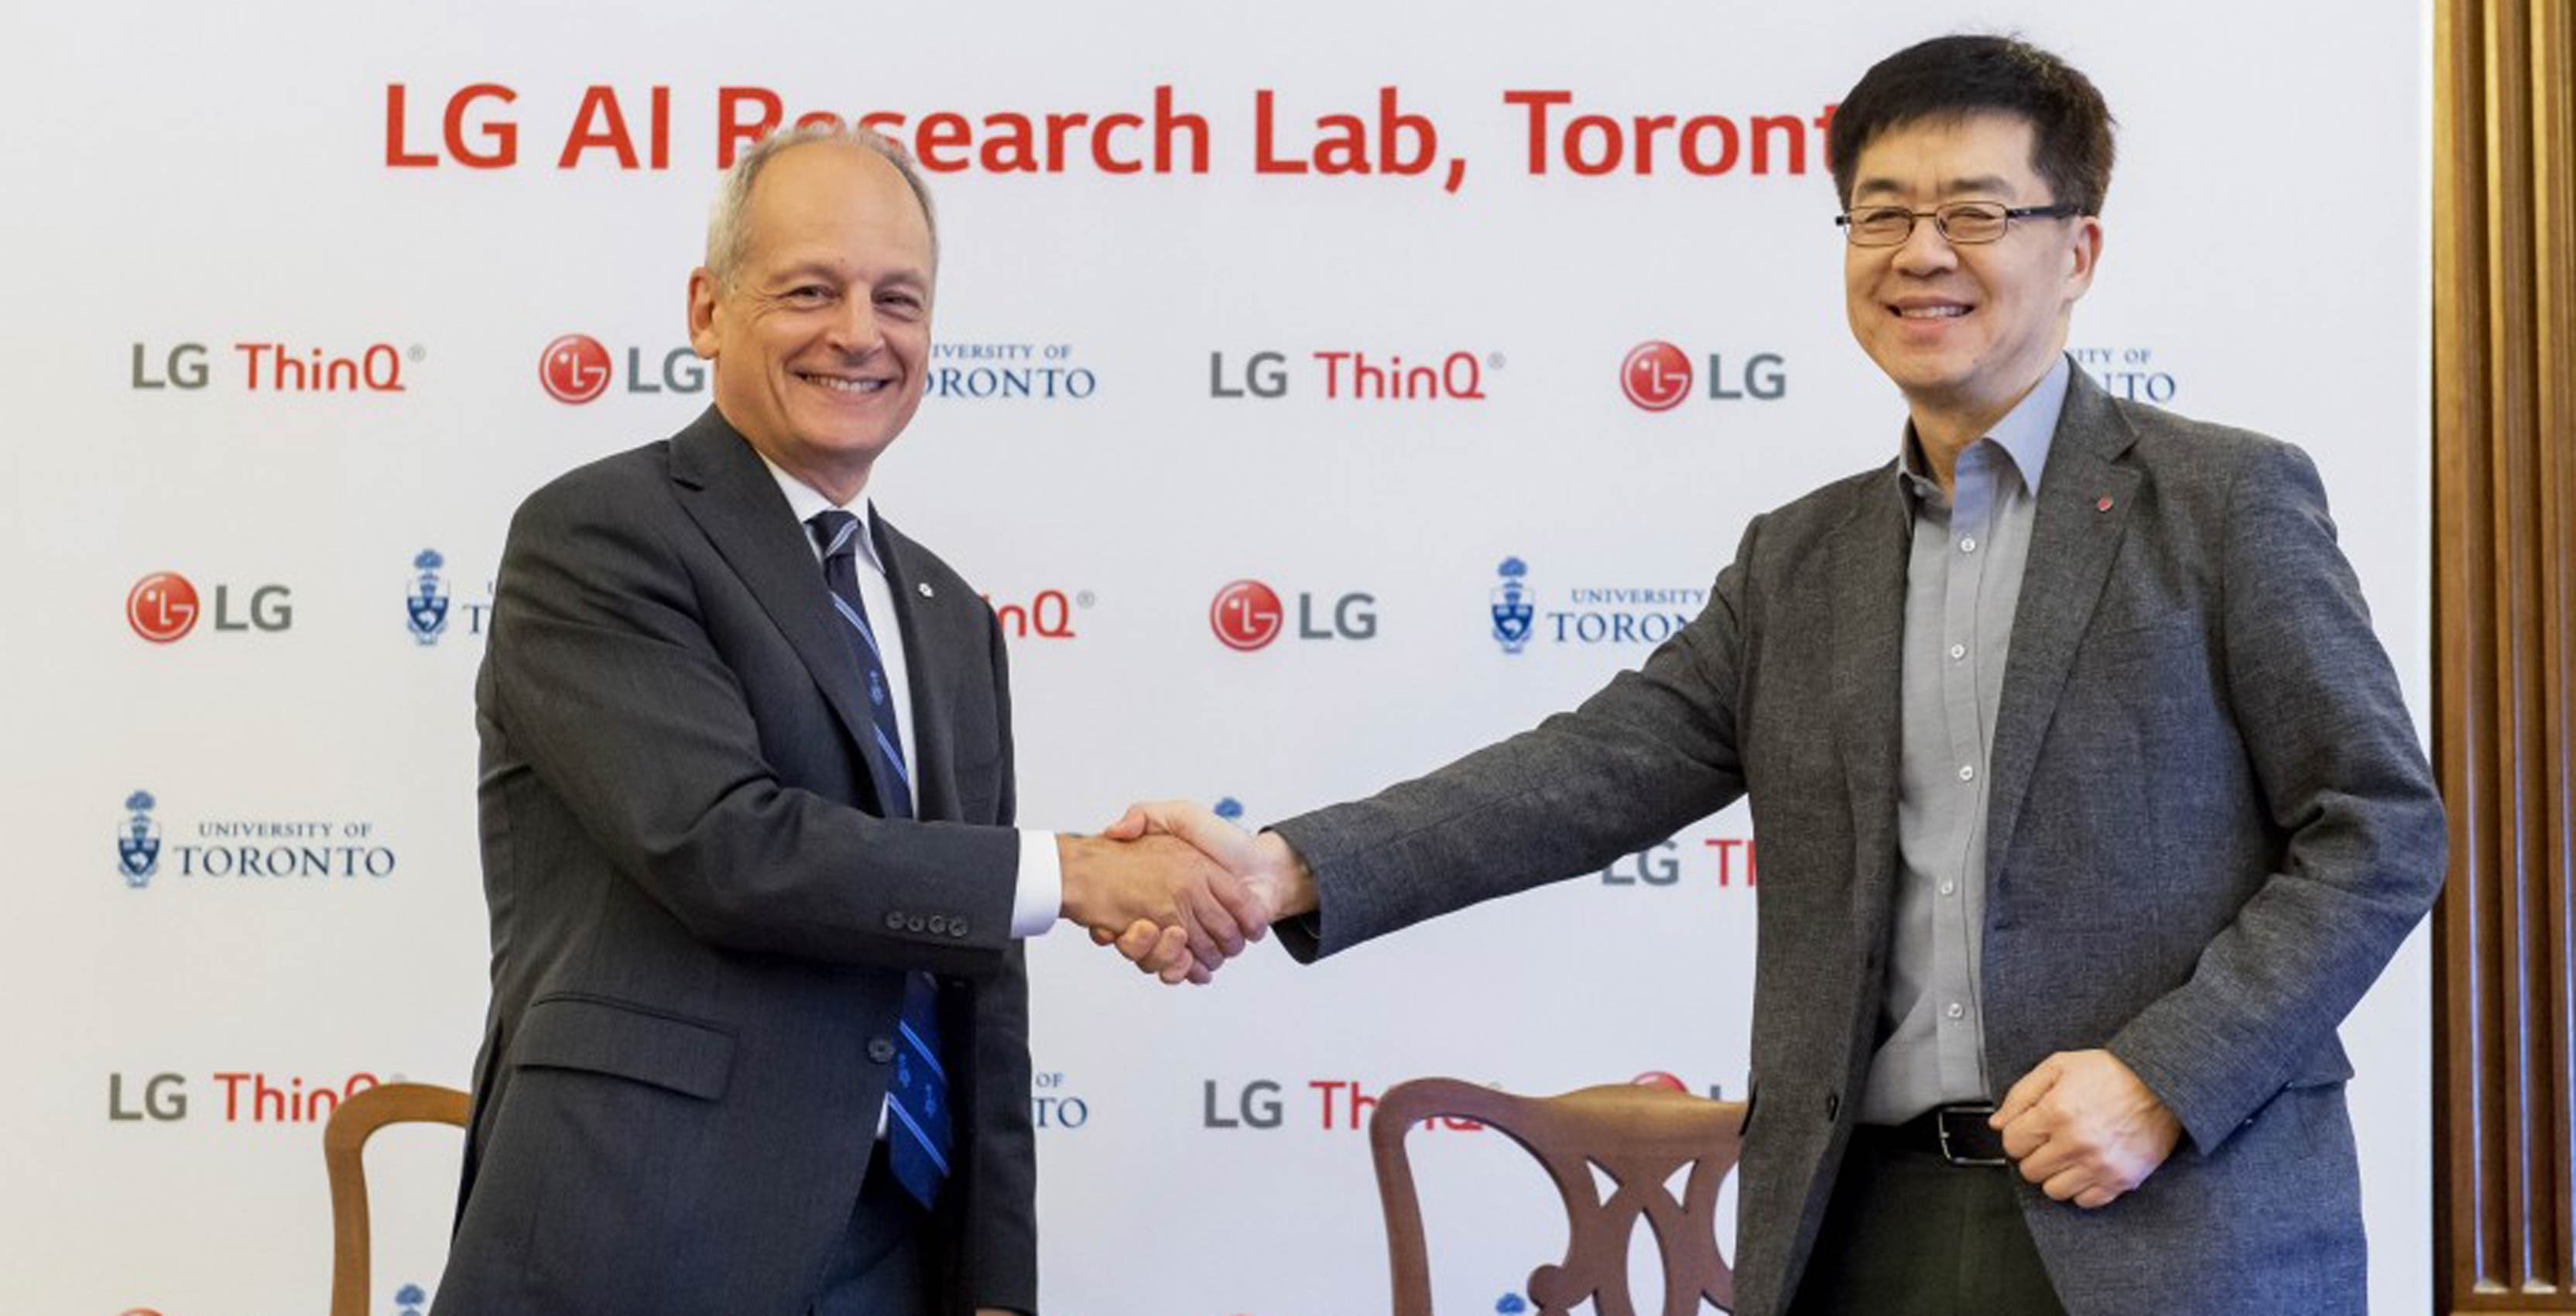 LG's new AI Research Lab at the University of Toronto